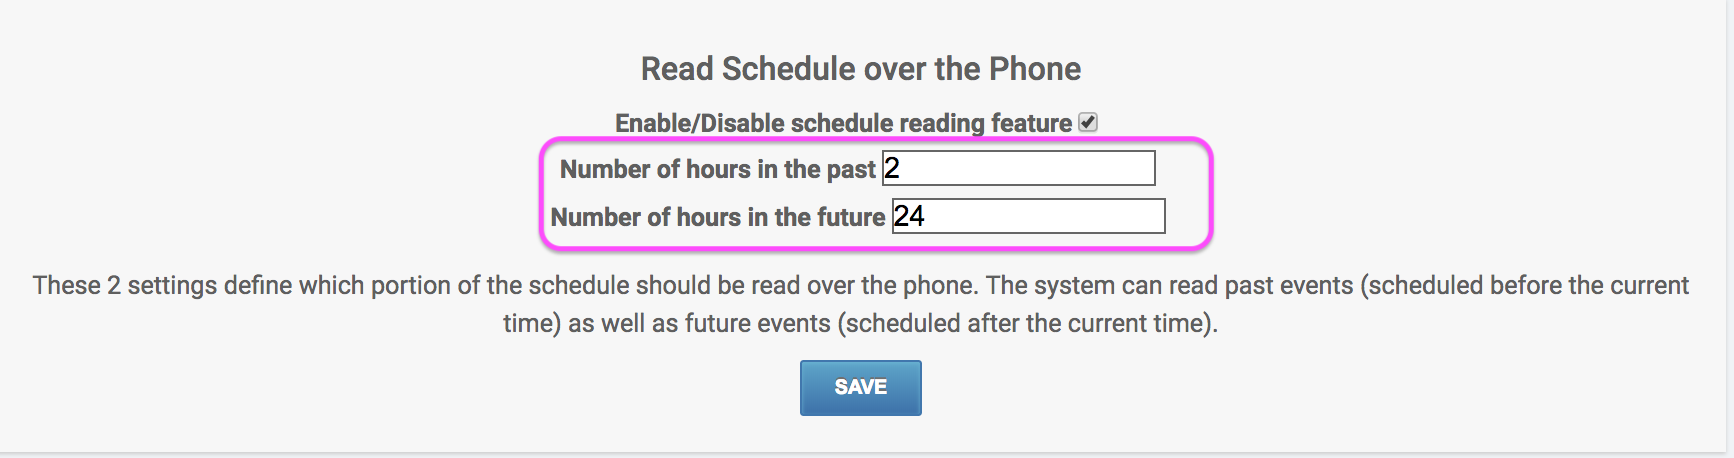 schedule_reading.png